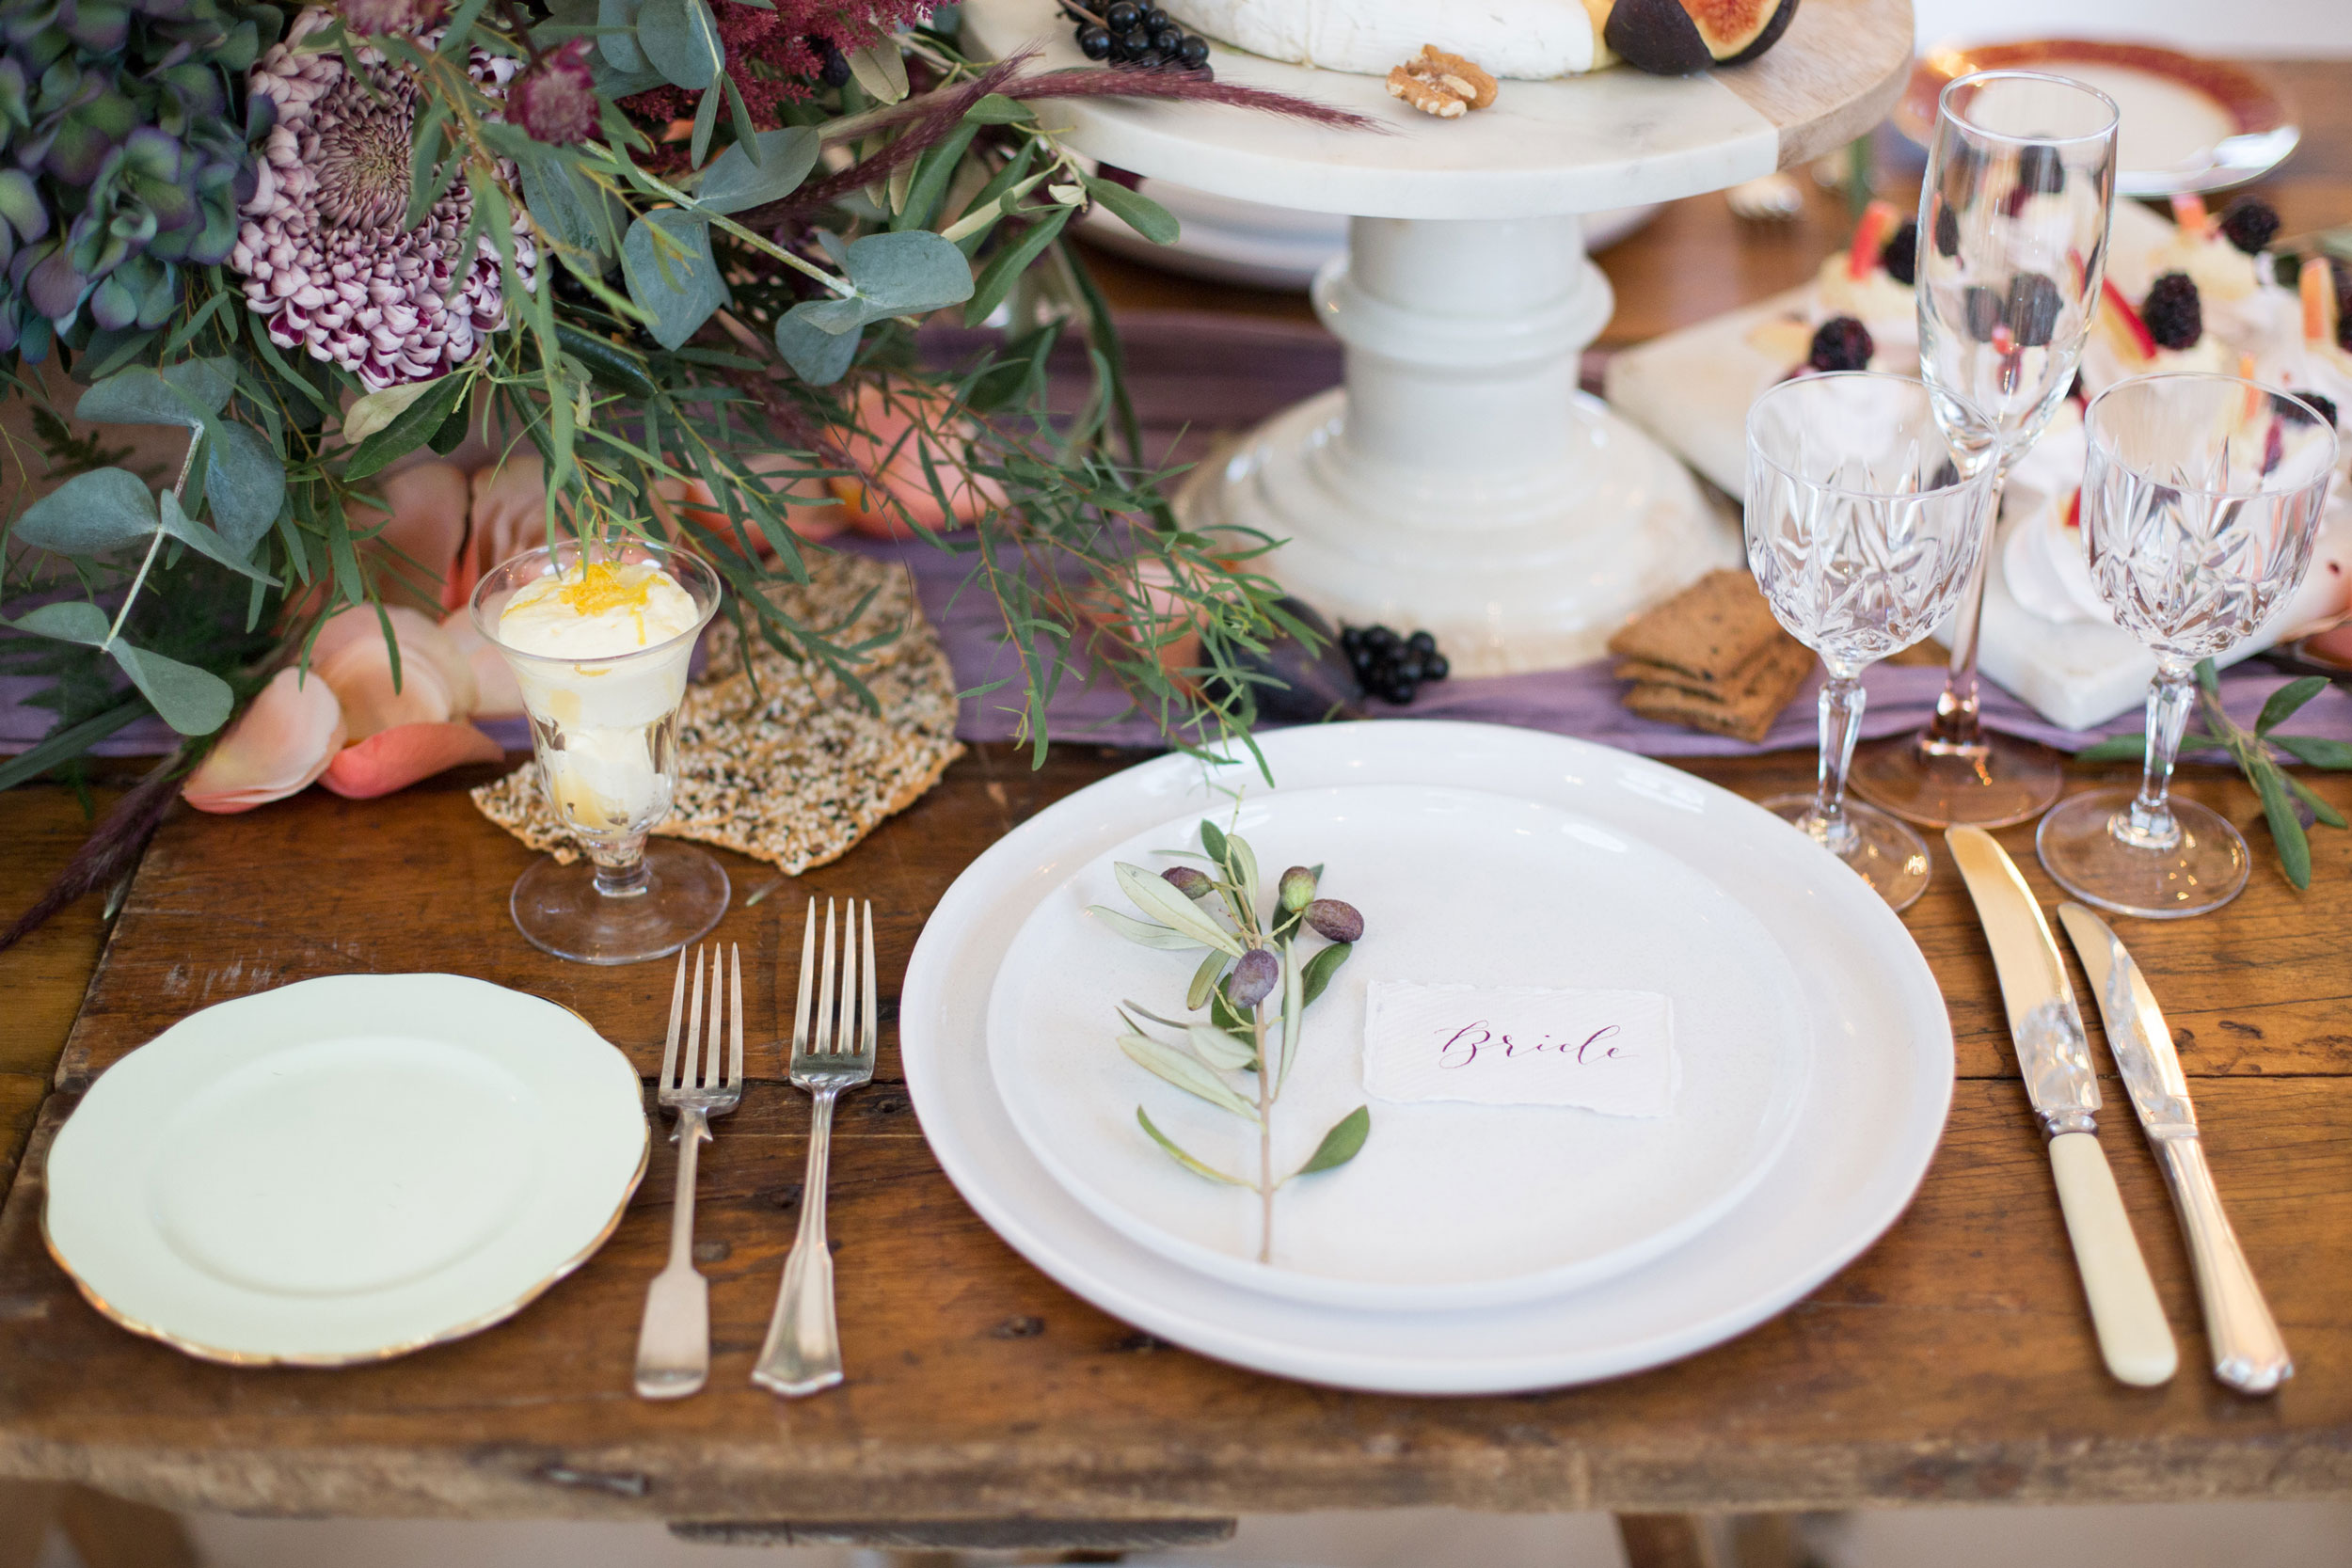 Wedding Catering & Feasting Tables | The Curated Kitchen, Surrey